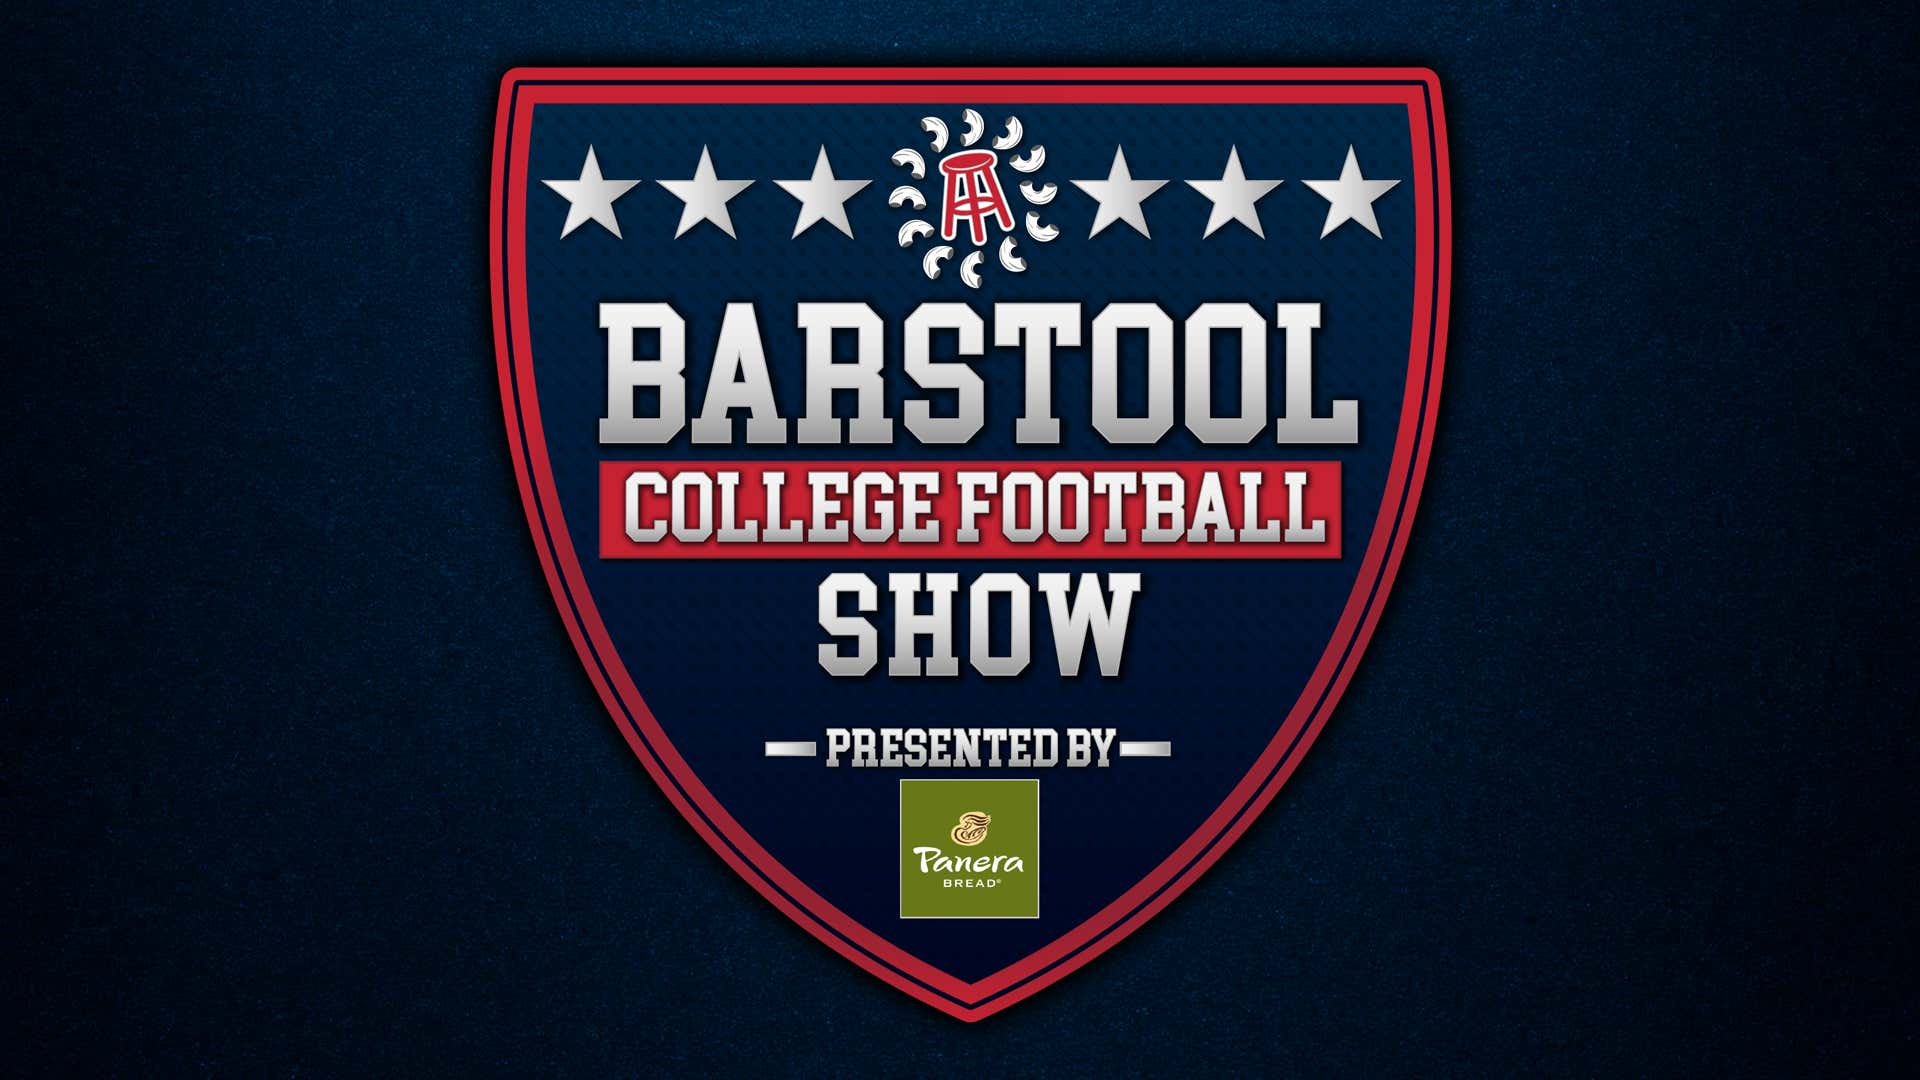 The Barstool College Football Show Debuts Saturday at 10 AM Will Be